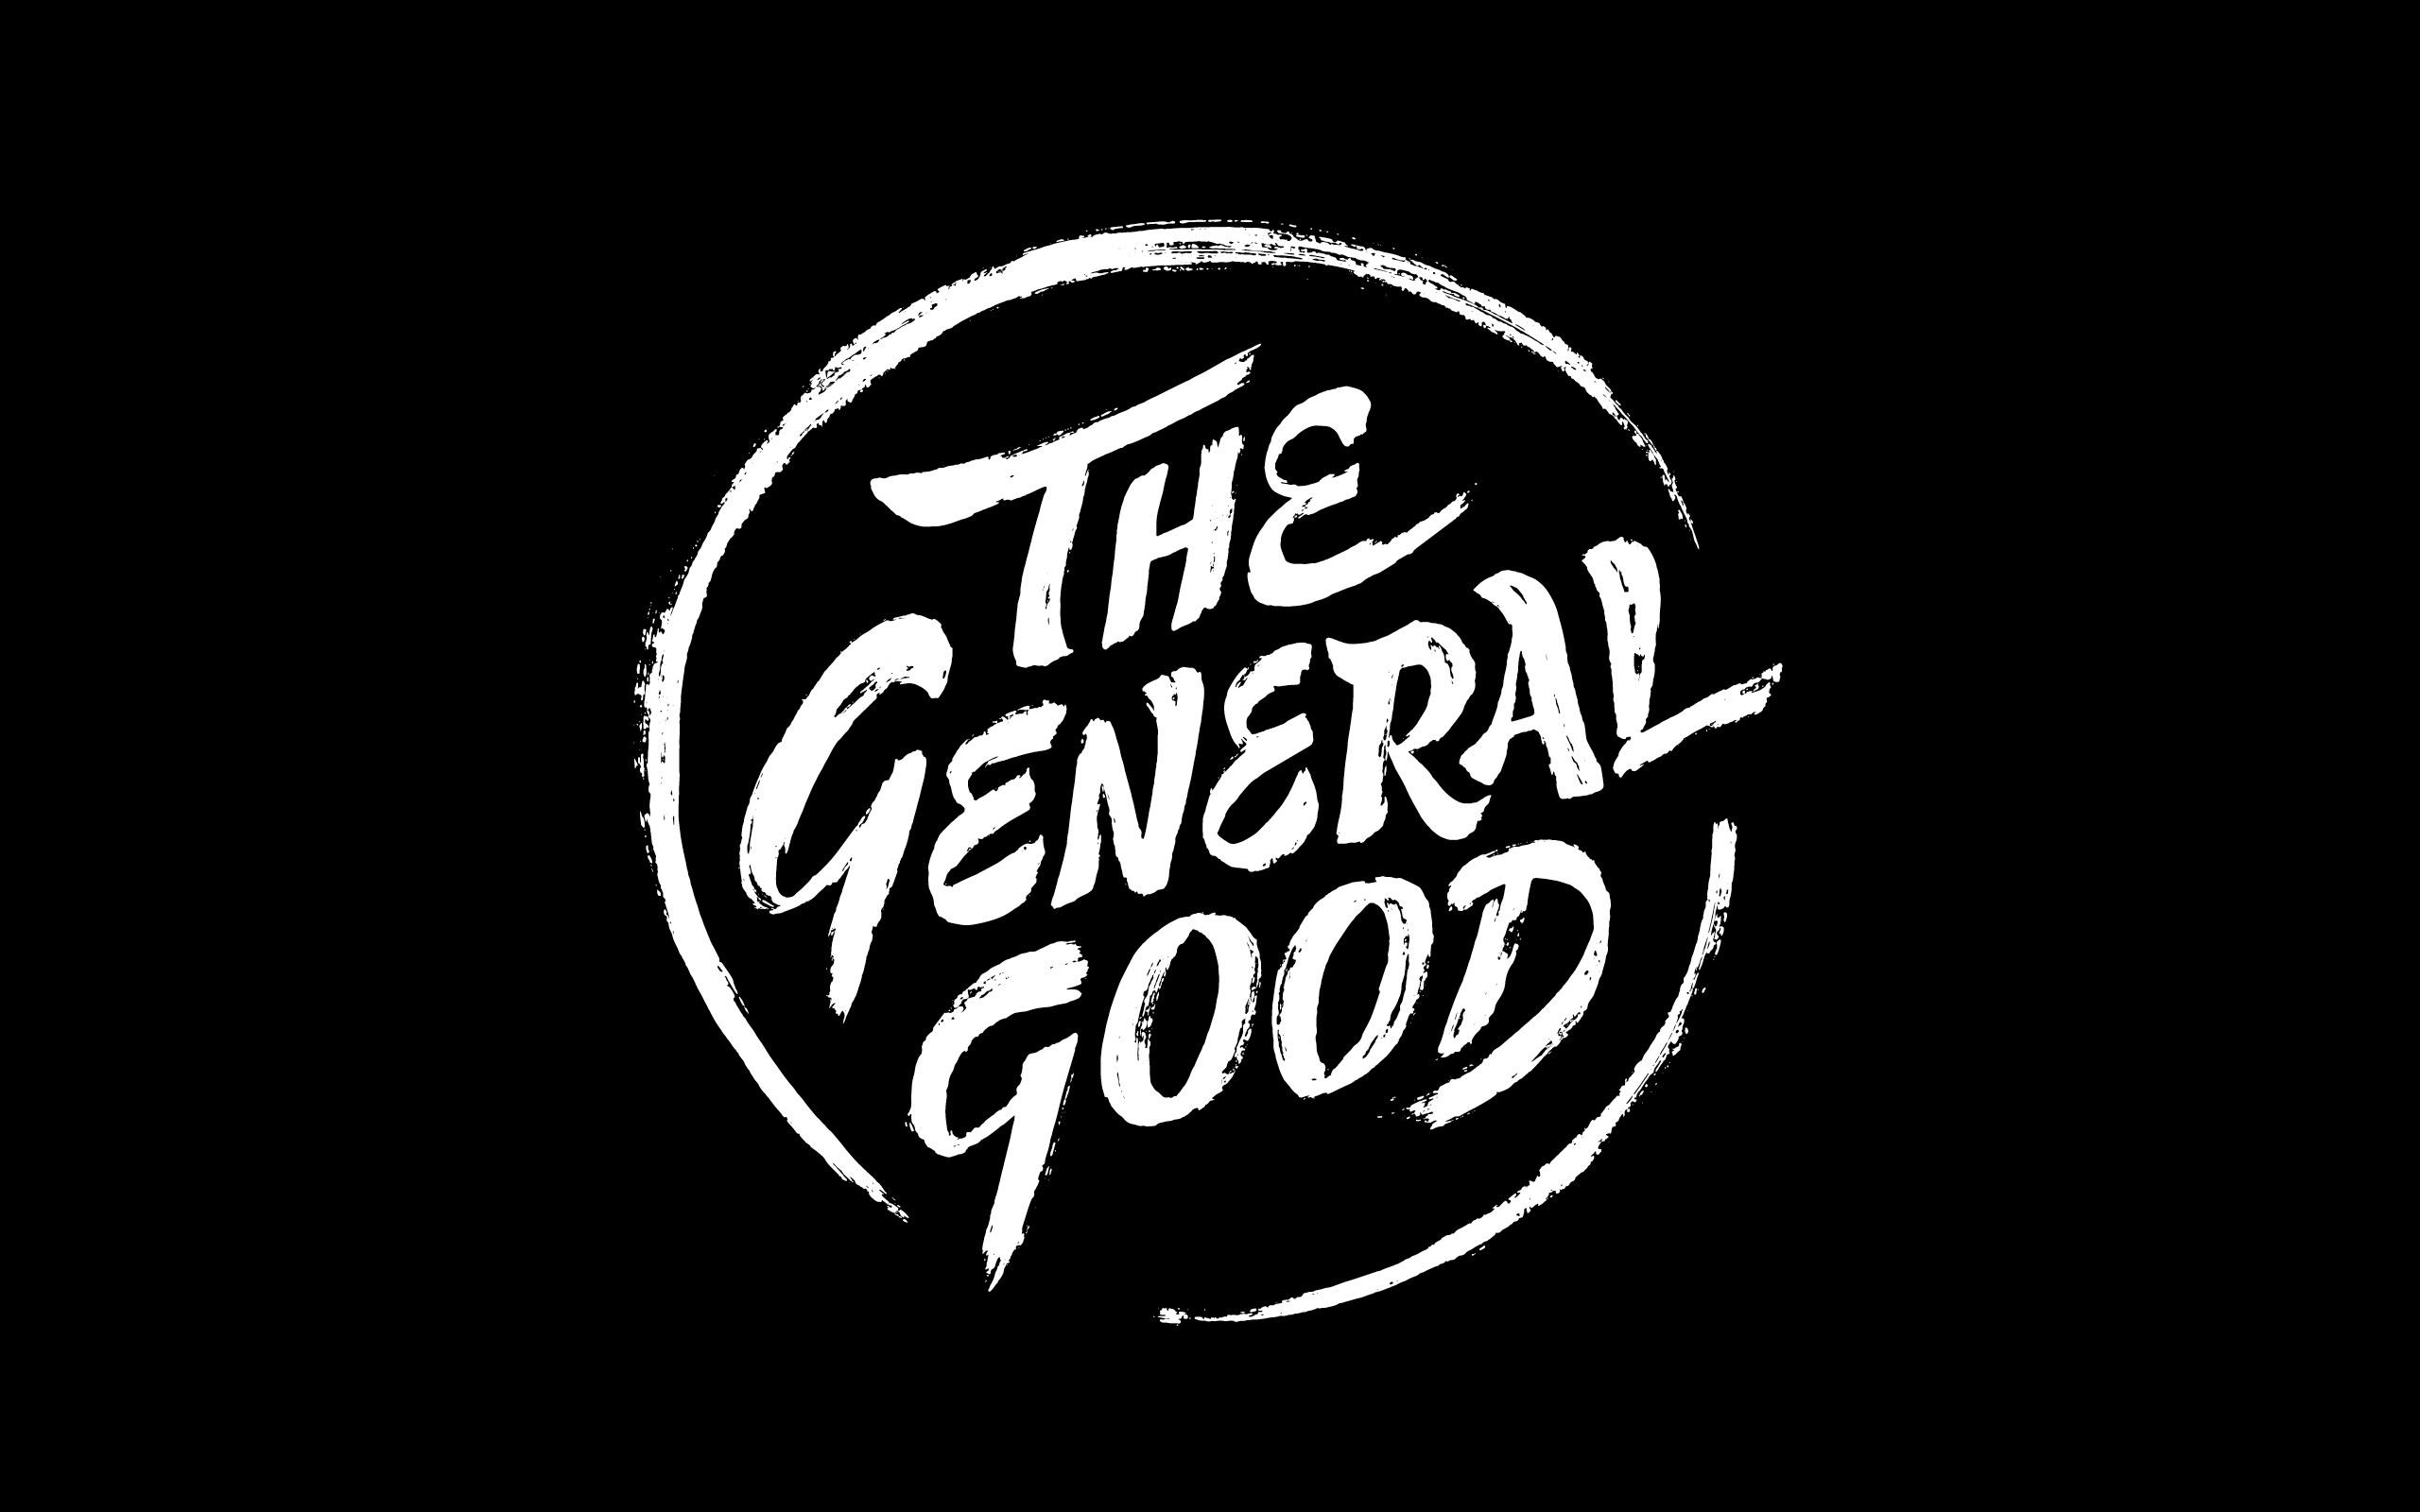 The General Good